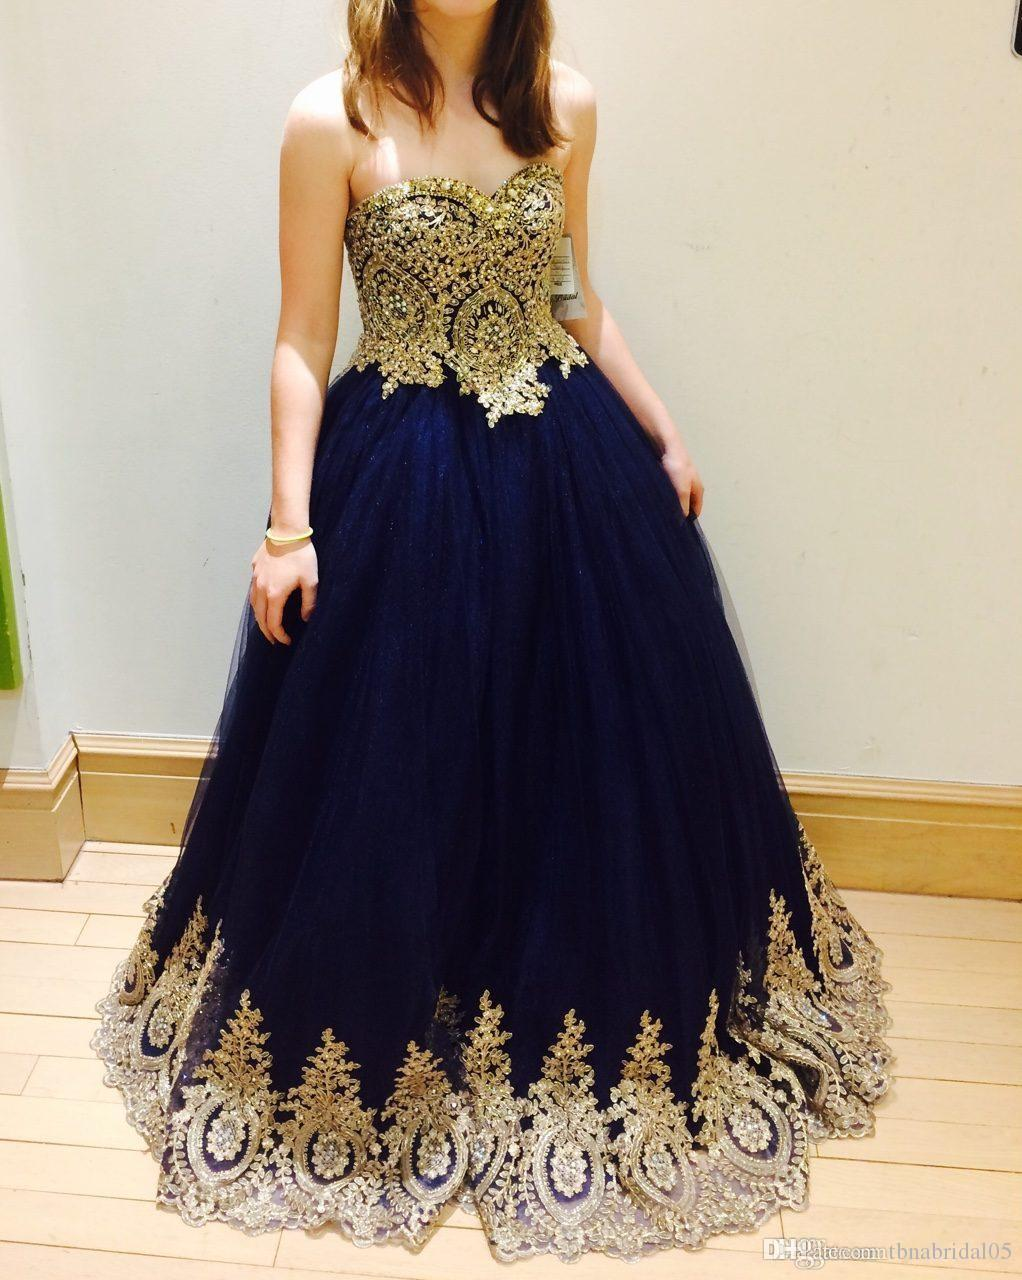 364b236fa Sweetheart Prom Dress Gold Appliques High Quality A Line Beaded Navy Blue Evening  Dress Ball Gown Party Gown Vestido De Festa Scala Prom Dresses Short Sexy  ...